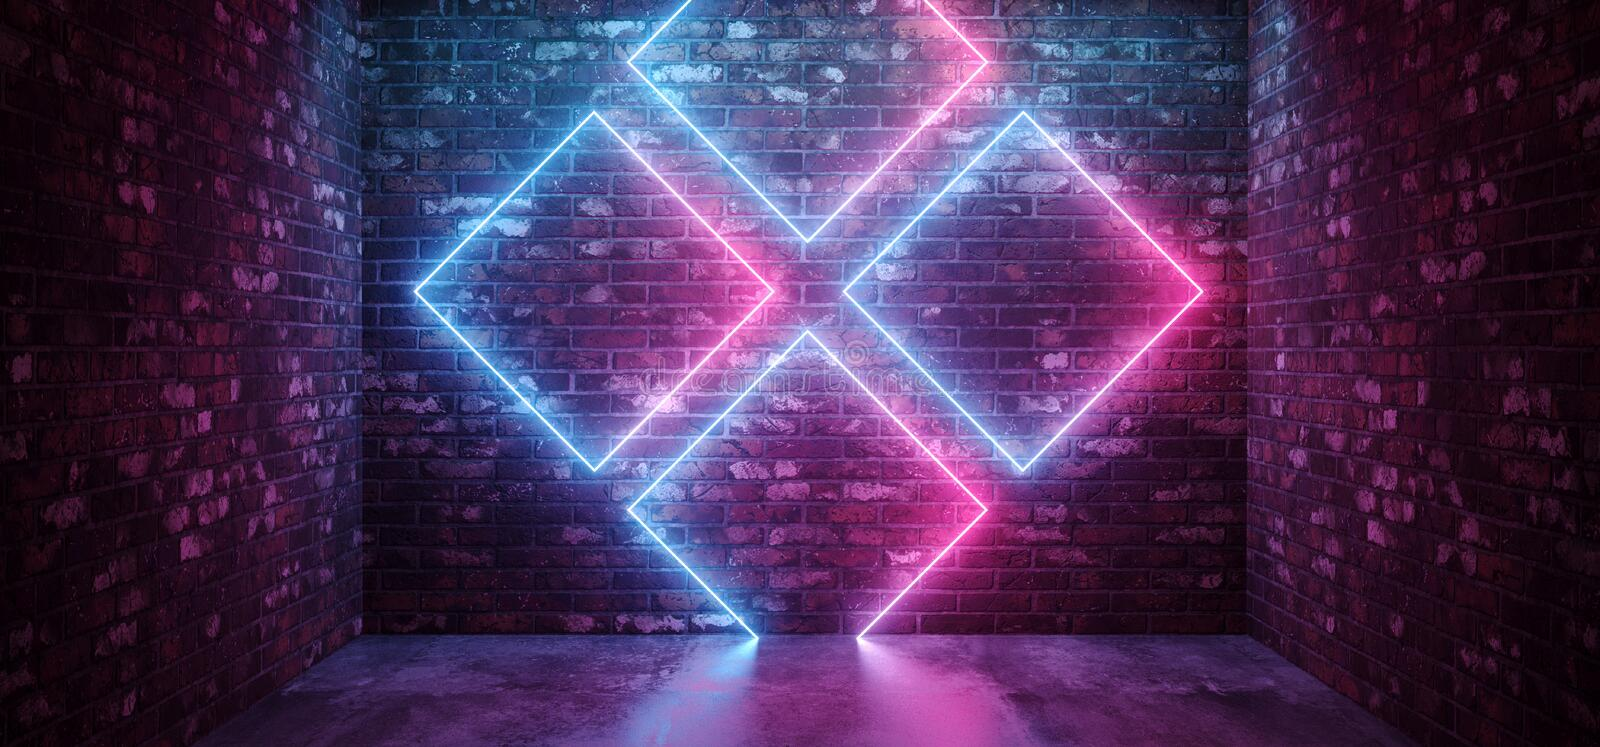 Sci Fi Futuristic Retro Modern Elegant Abstract Rectangle Crossed Neon Shapes Glowing Purple Blue Pink On Grunge Brick Wall Club. Stage Concrete Floor .3D stock illustration